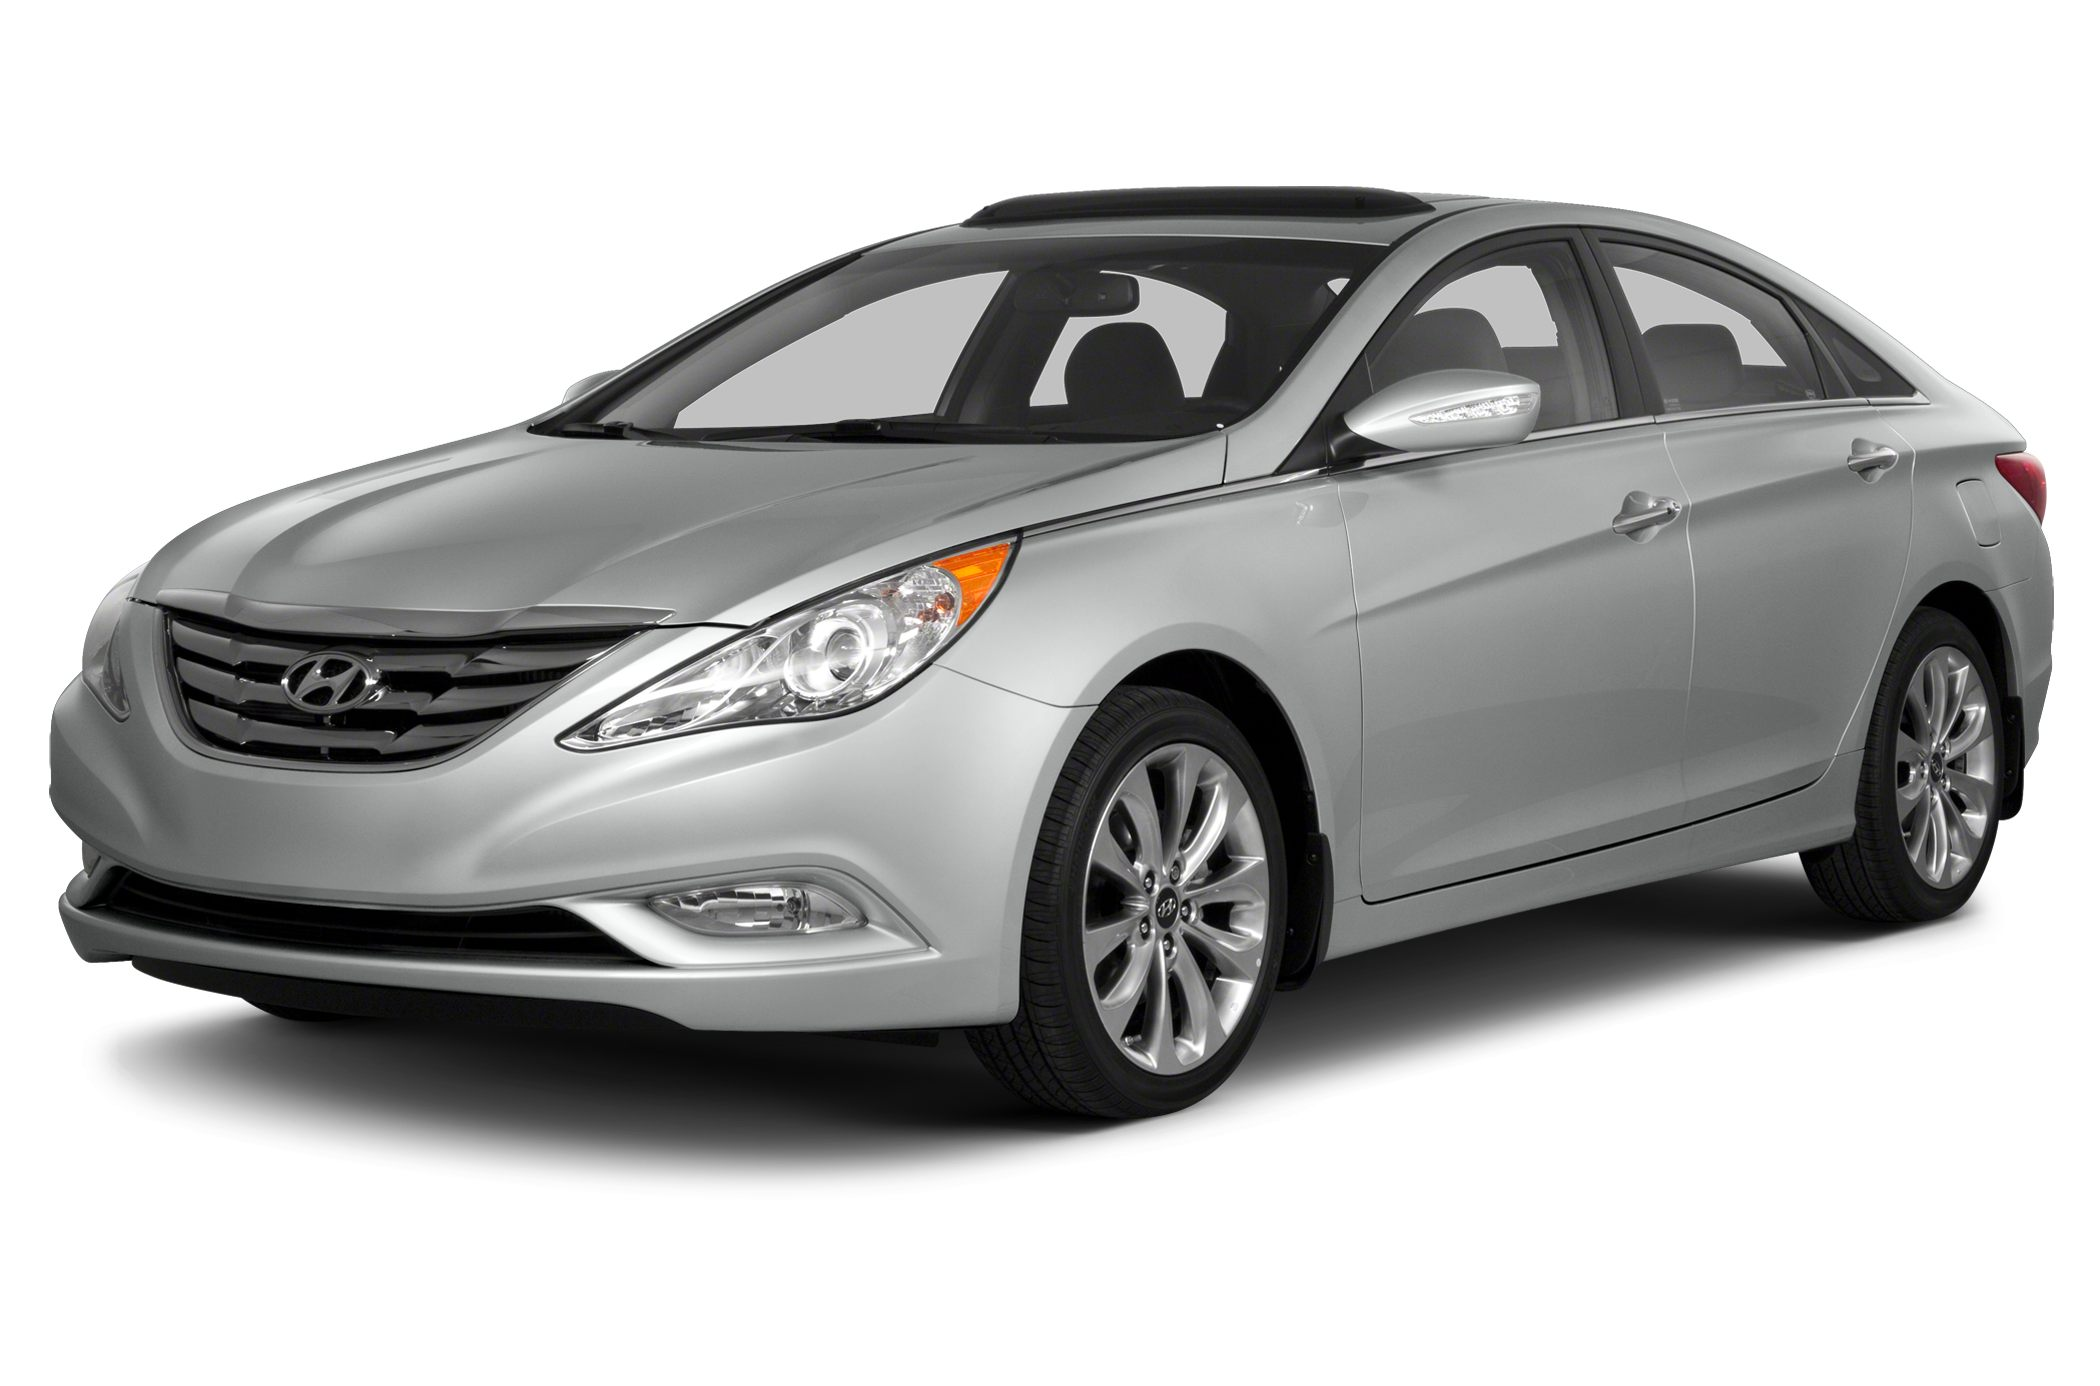 2013 Hyundai Sonata Limited 2.0T Sedan for sale in Bloomfield for $0 with 23,924 miles